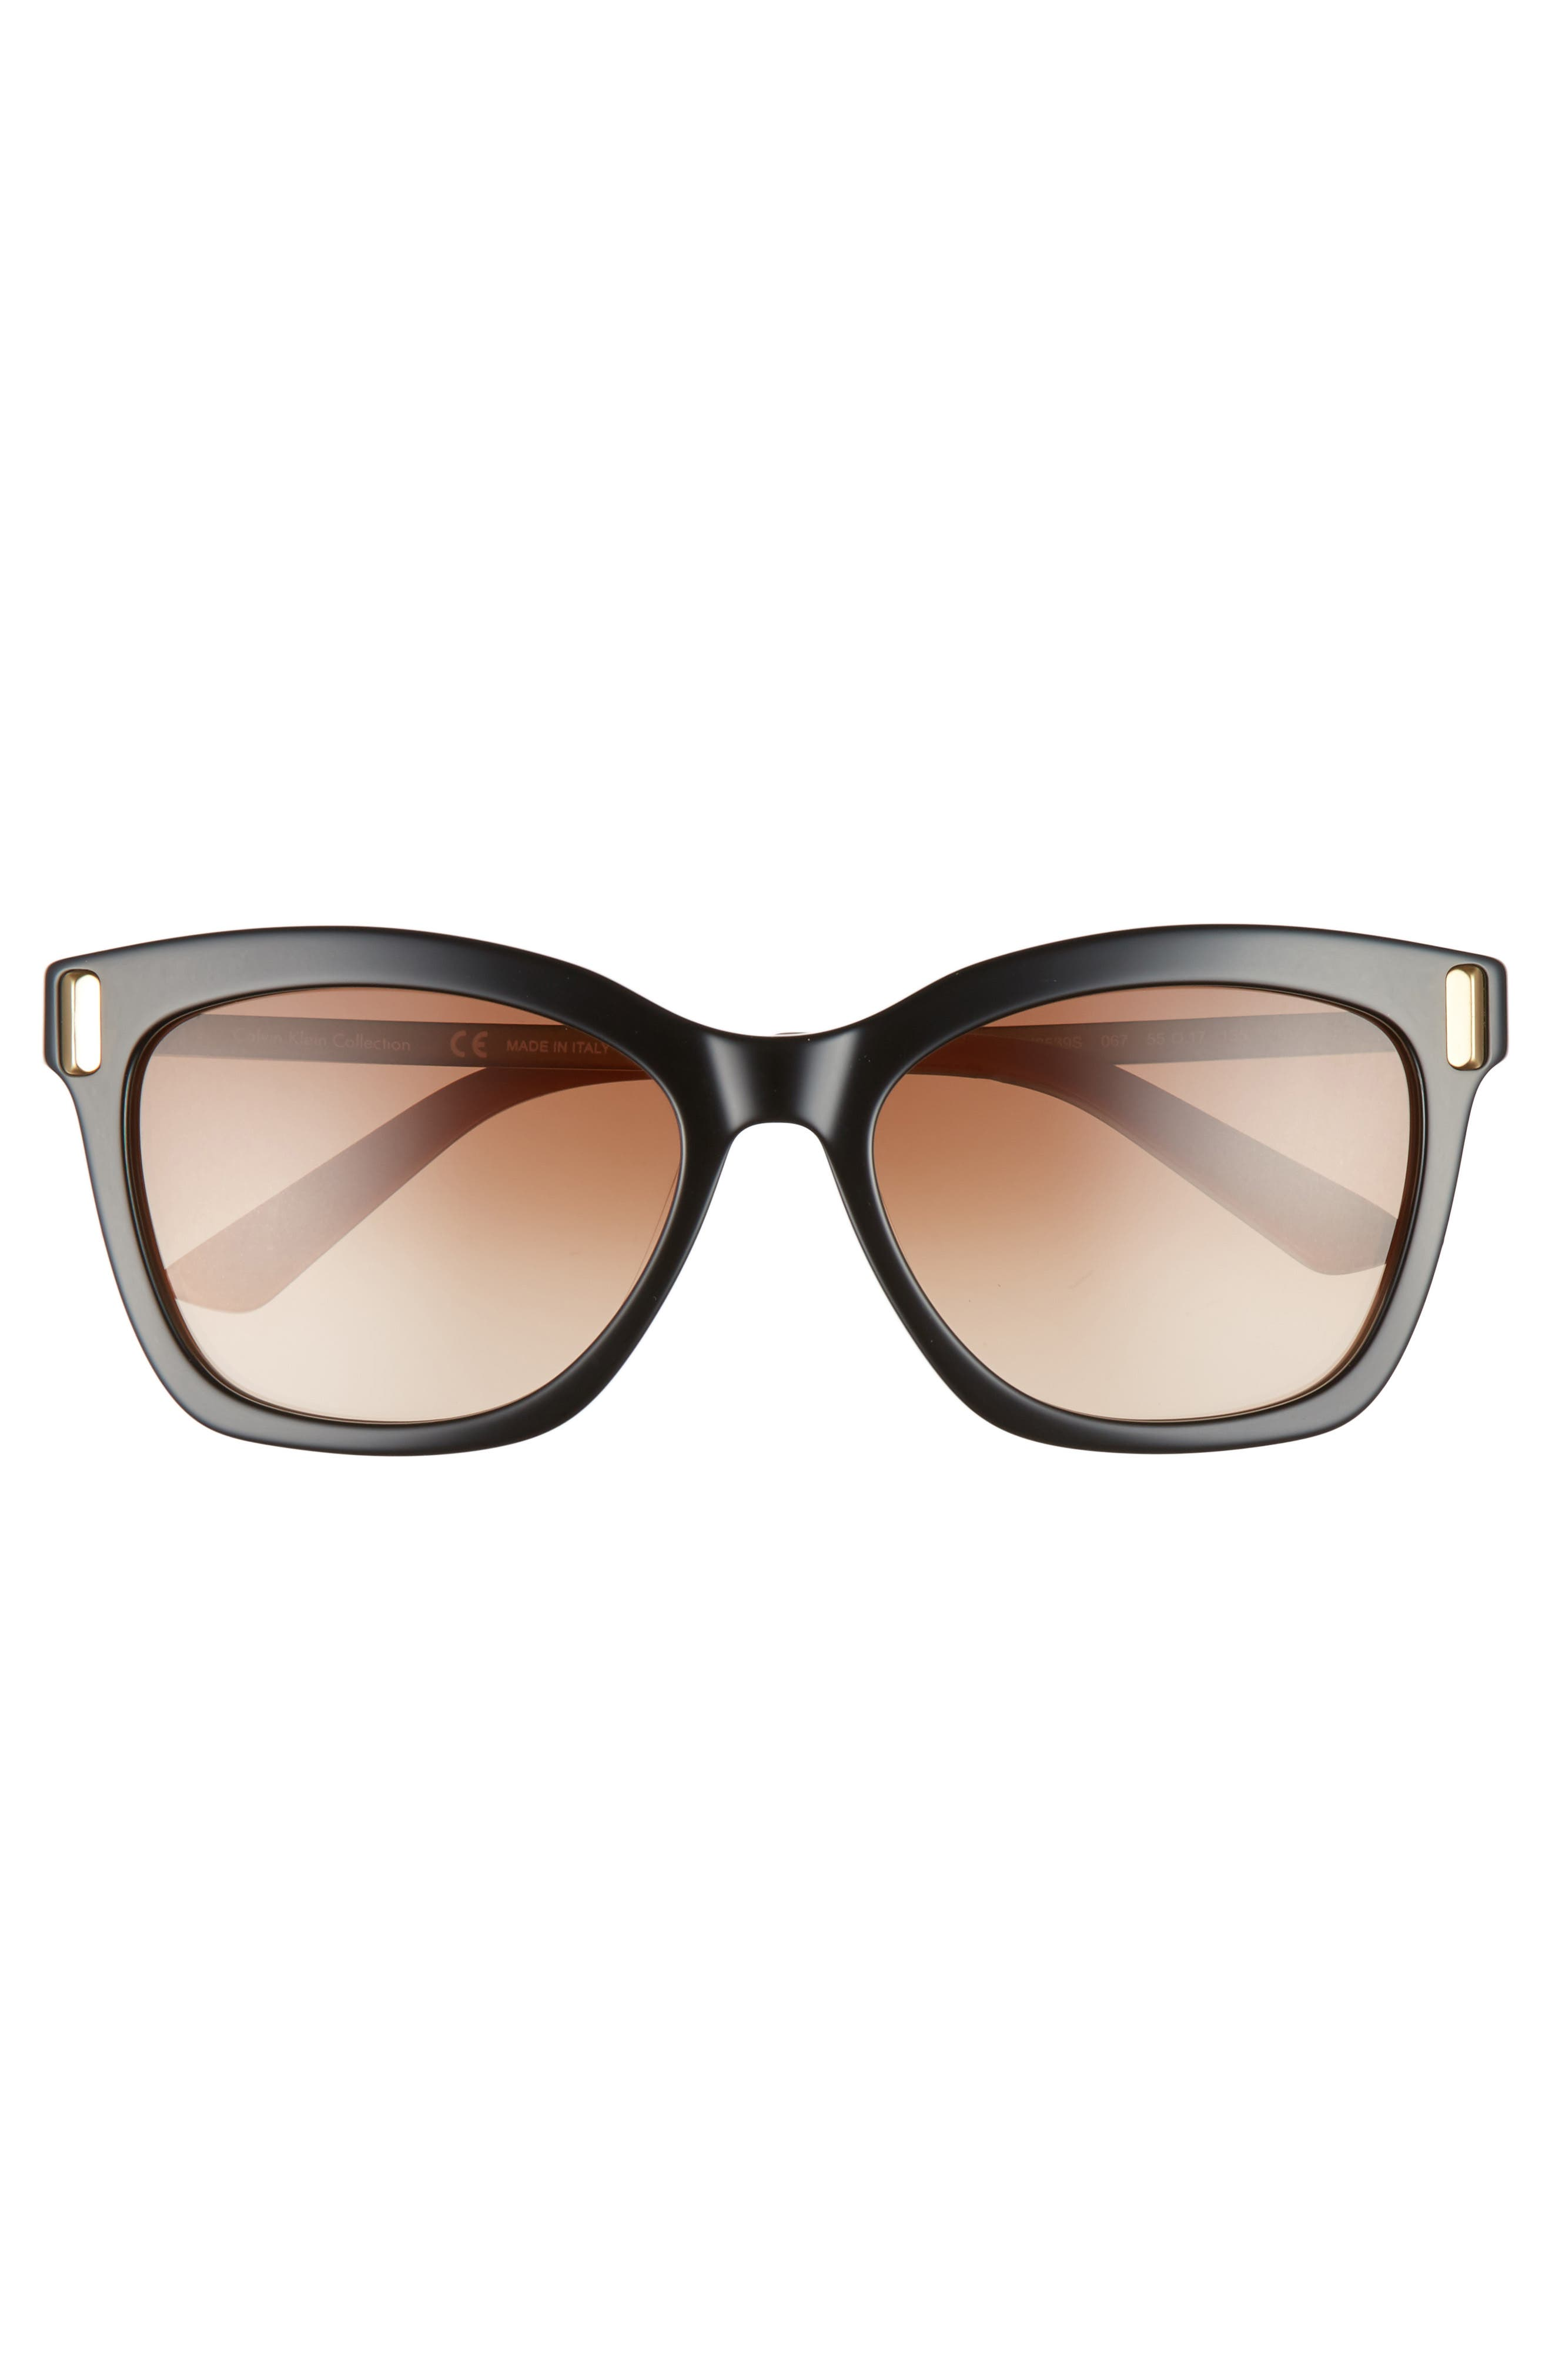 55mm Square Sunglasses,                             Alternate thumbnail 3, color,                             001